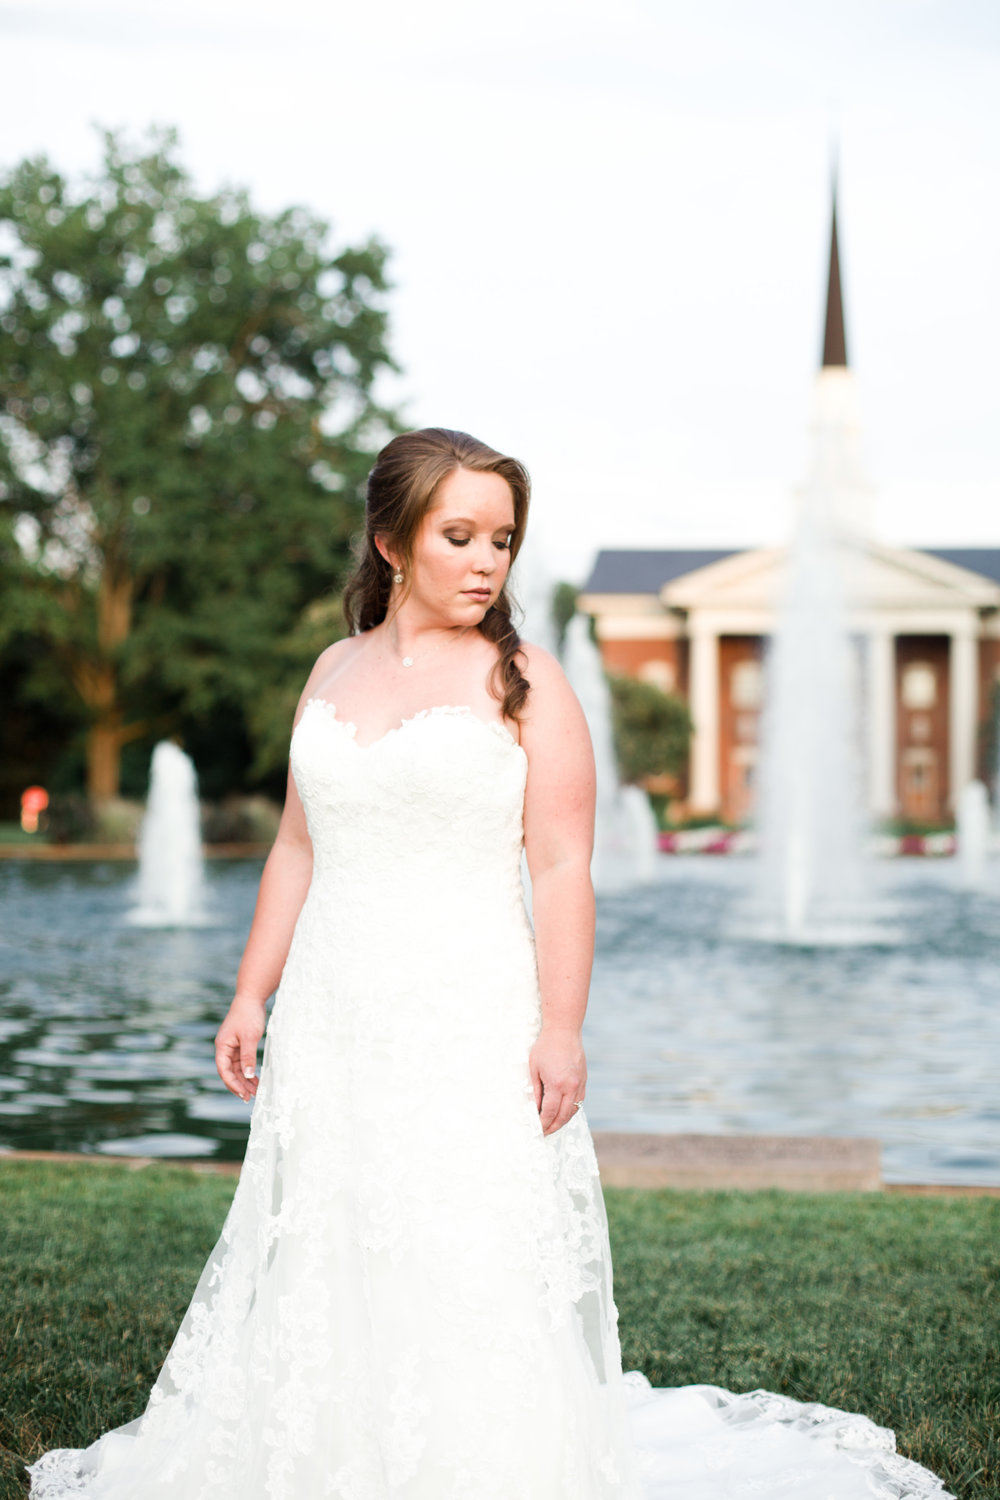 gabbie_bridal_poured_out_photography-82.jpg